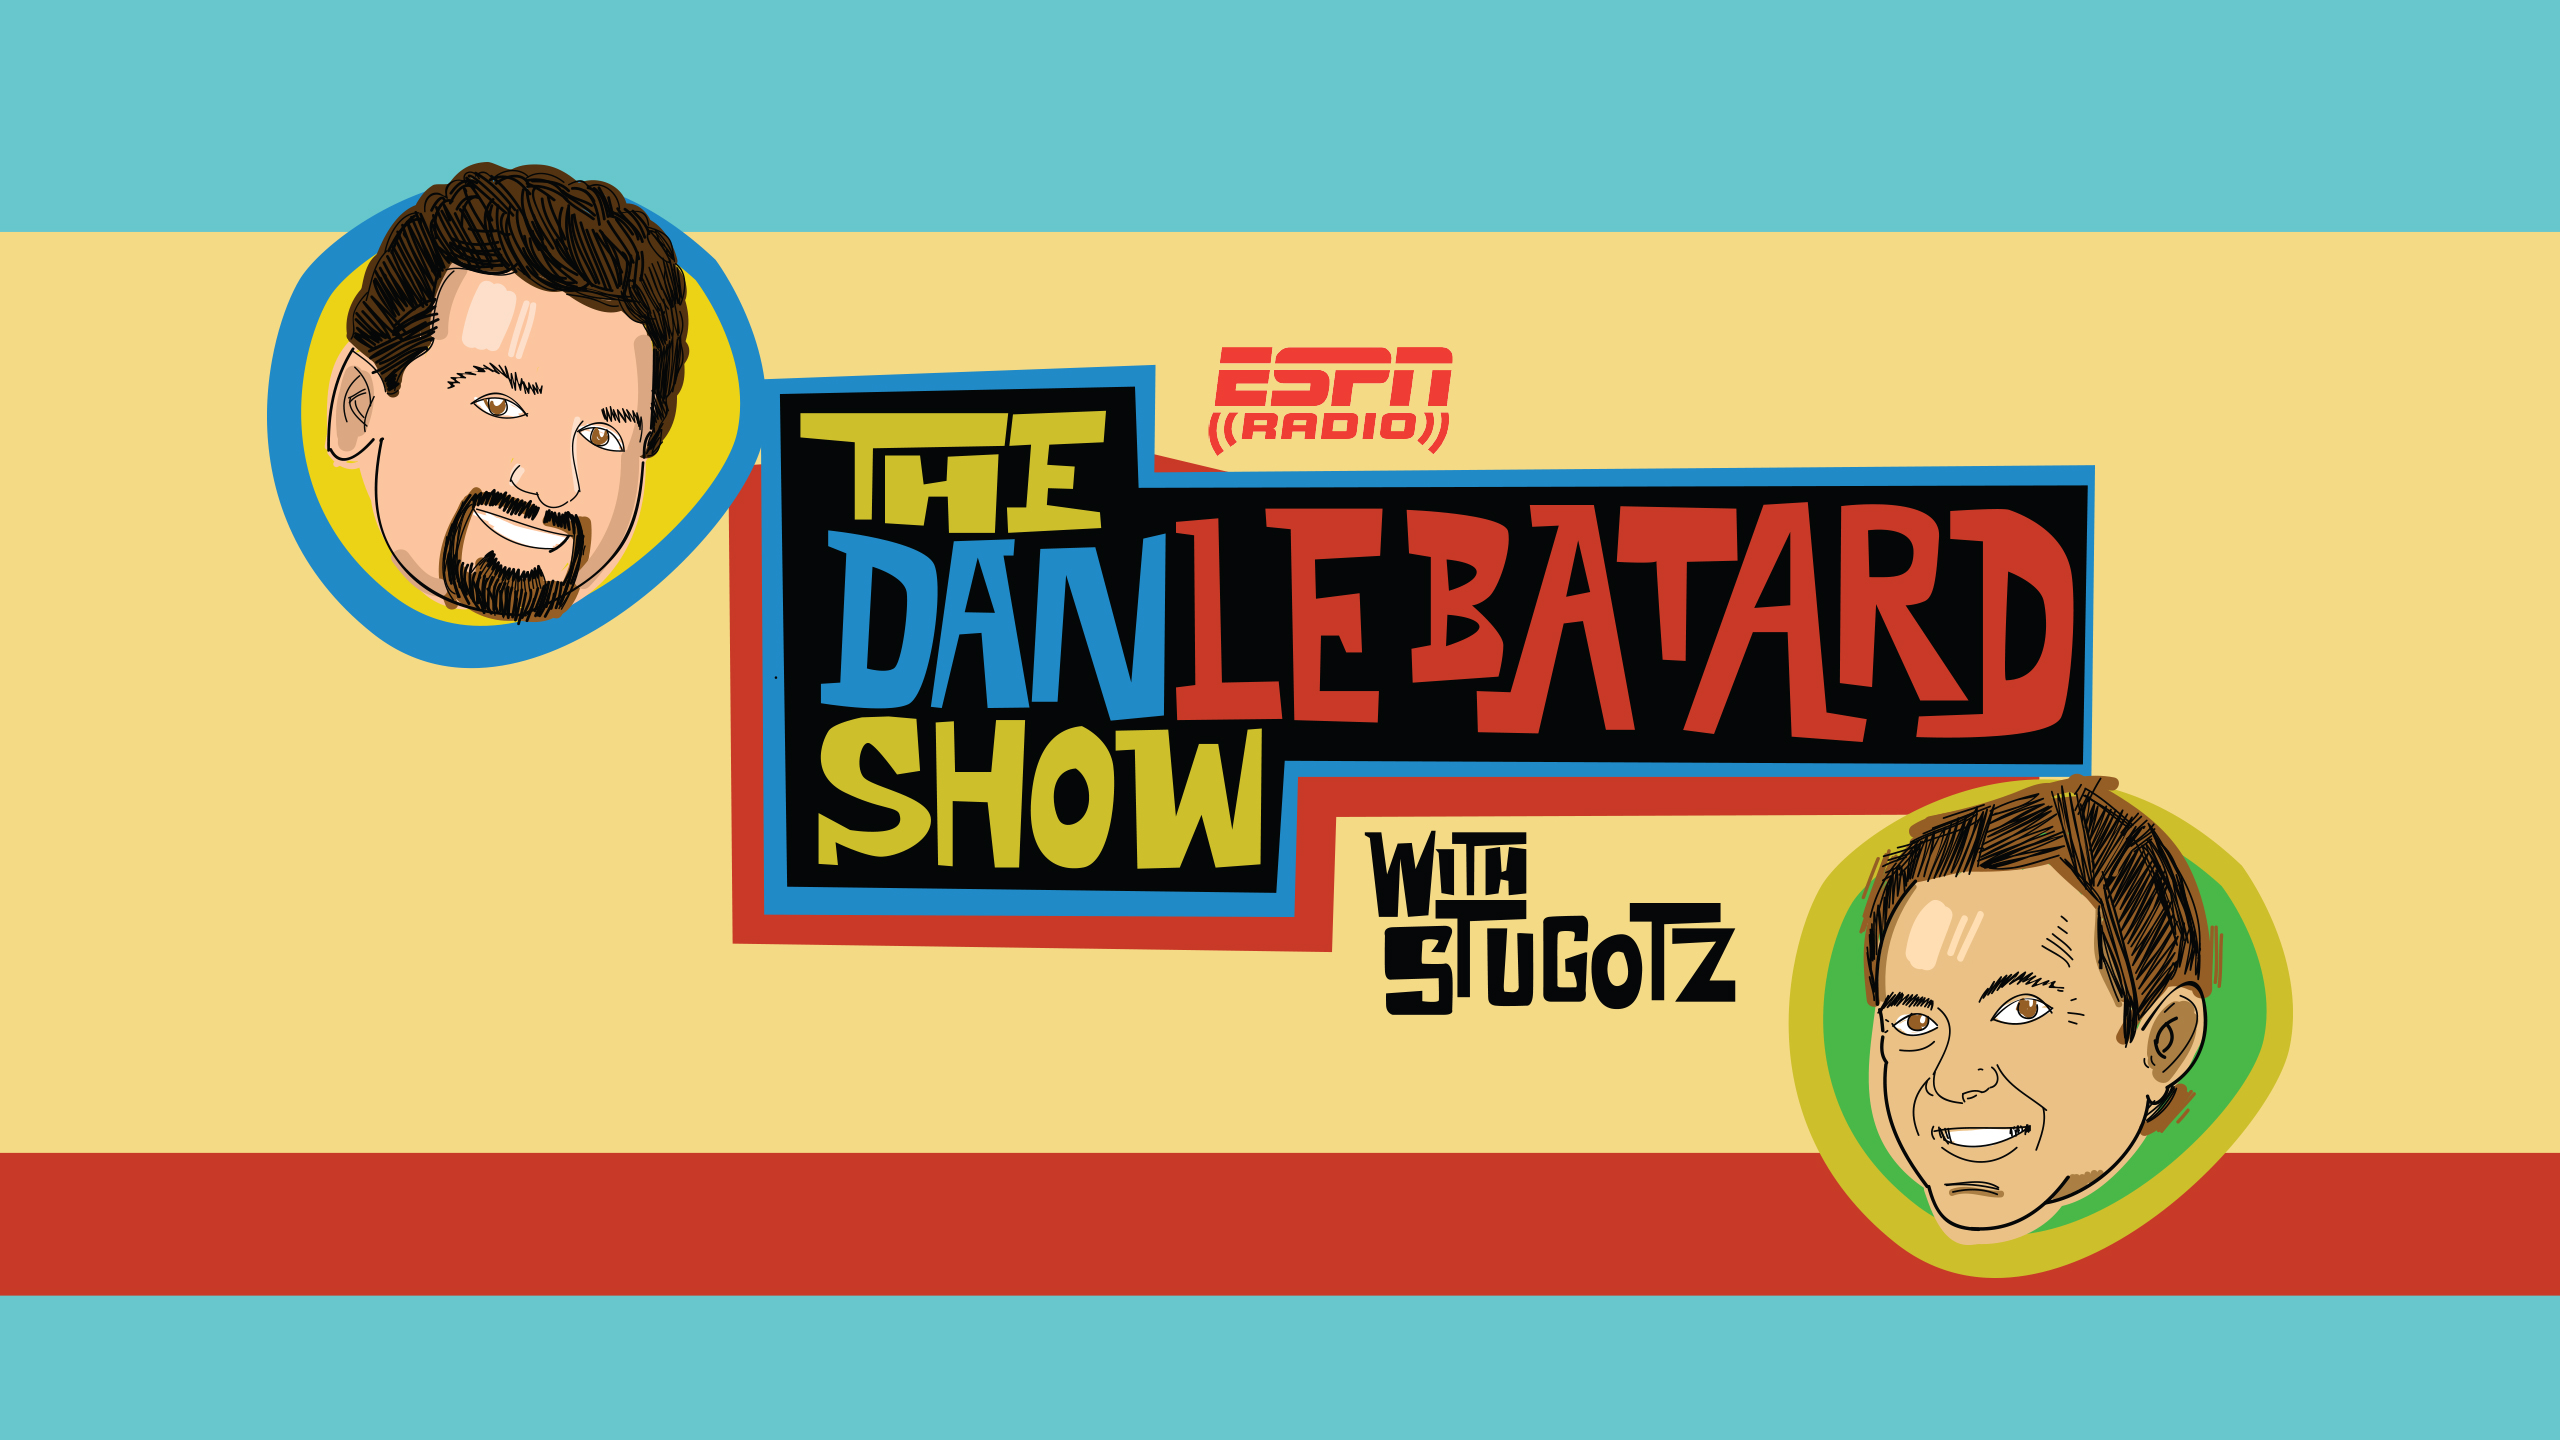 Thu, 12/13 - The Dan Le Batard Show with Stugotz Presented by Progressive